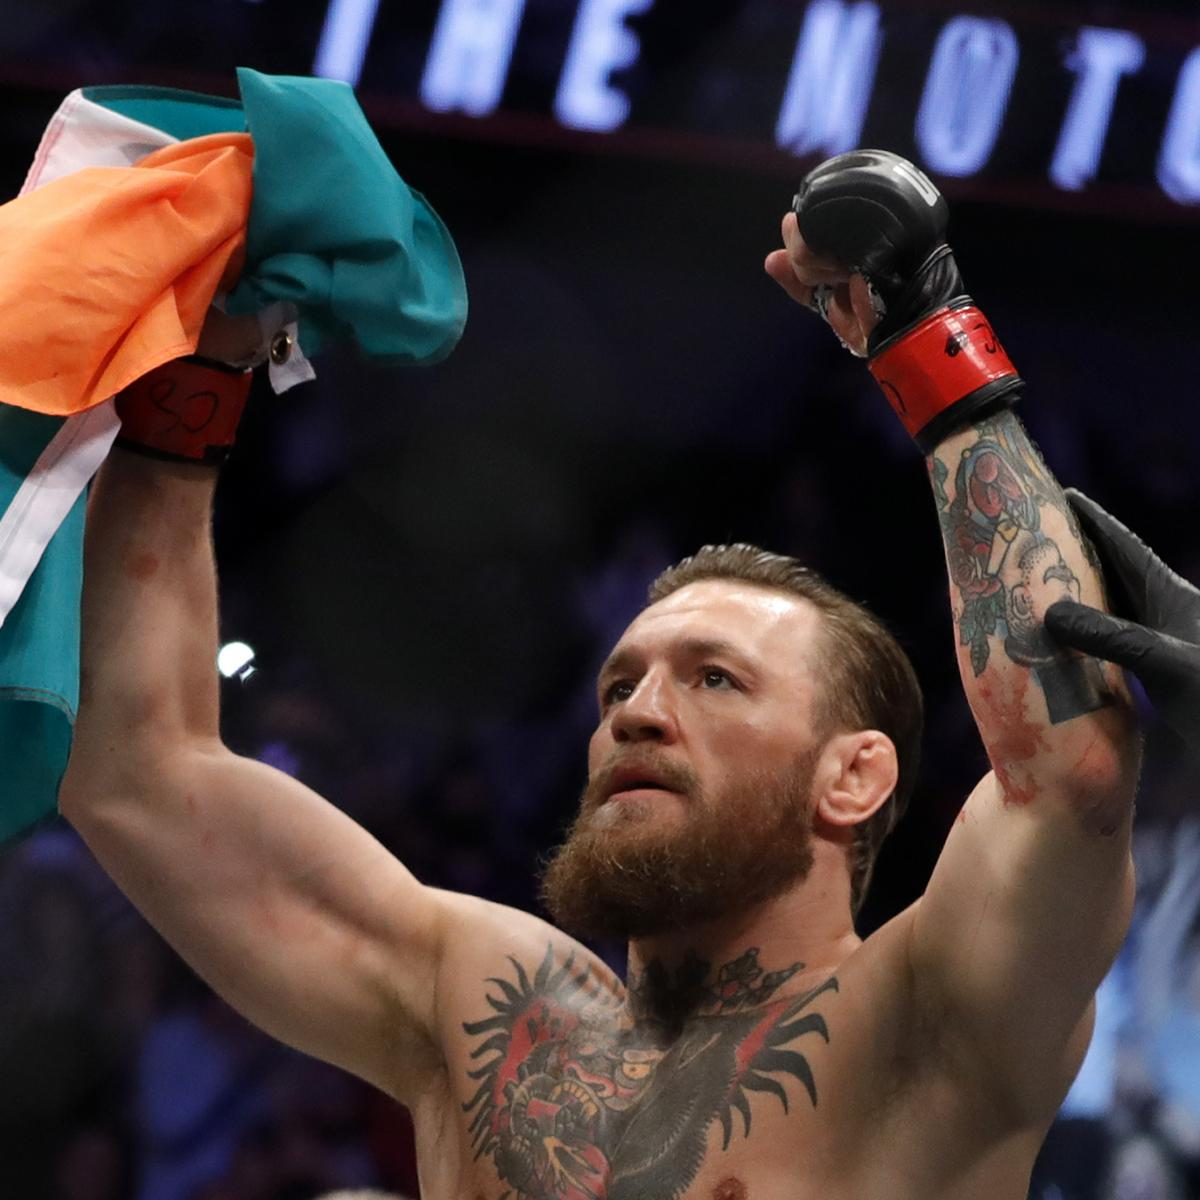 WWE's Becky Lynch Predicts Conor McGregor Would Beat Khabib in UFC Fight Rematch